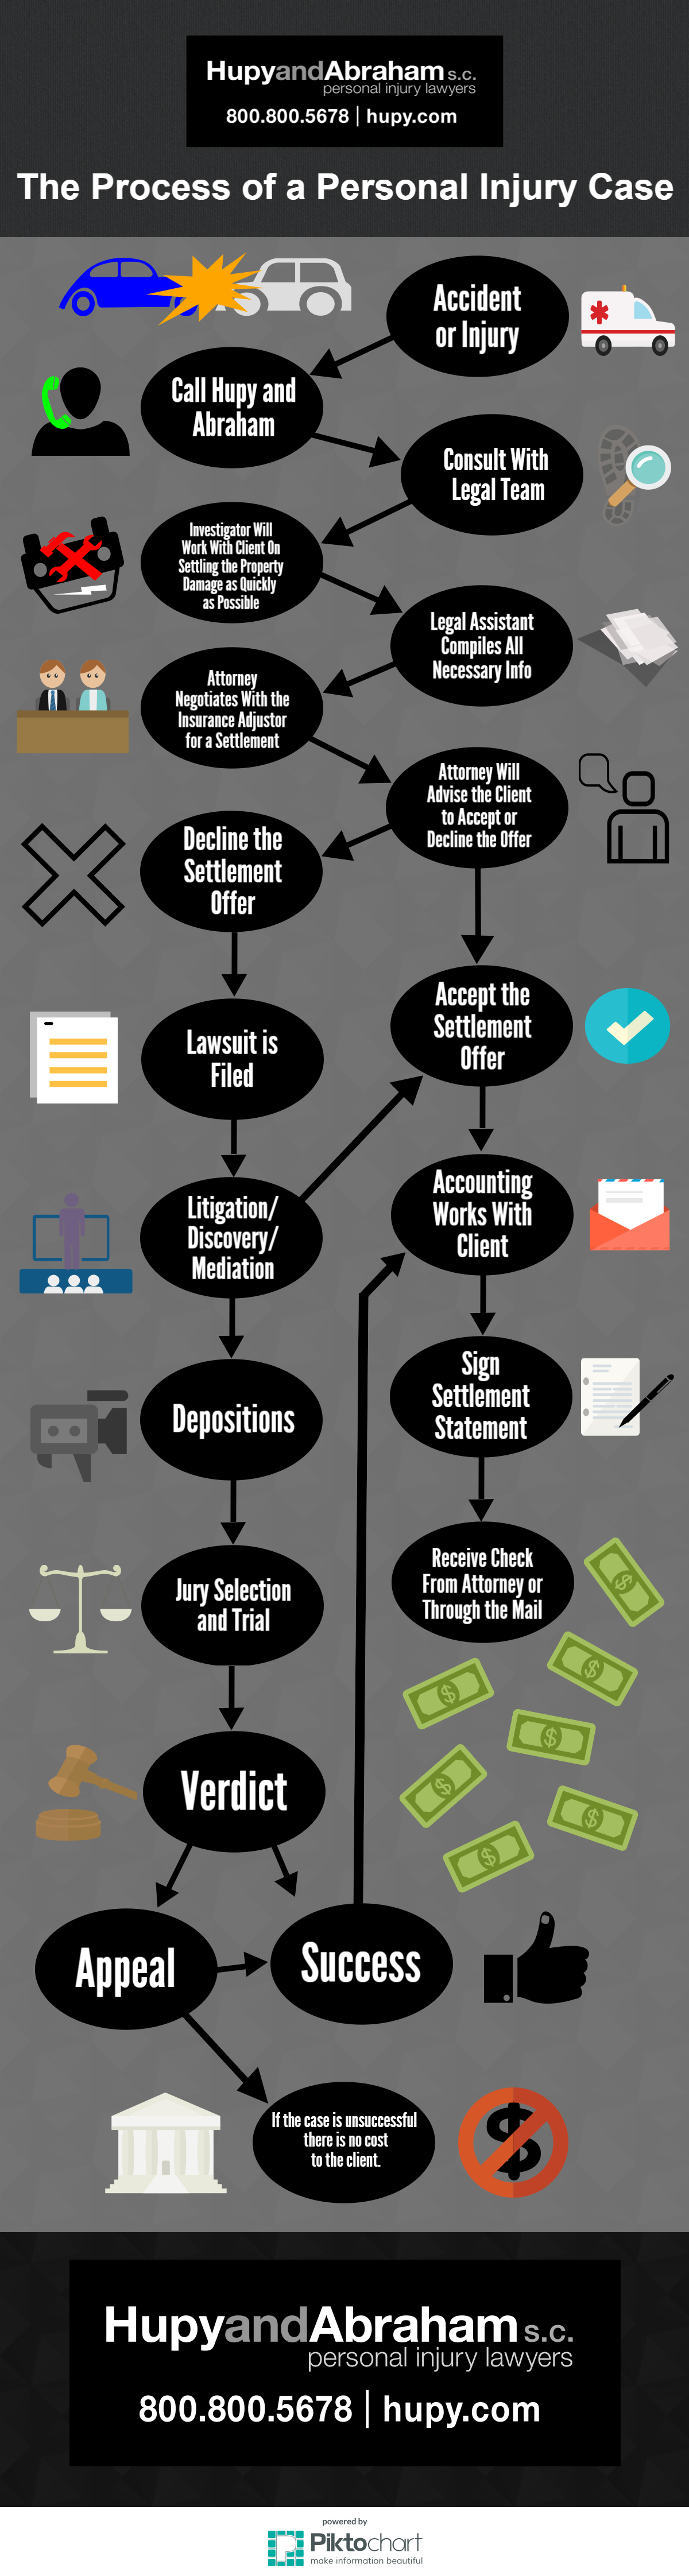 The process of a personal injury claim is complex, and no